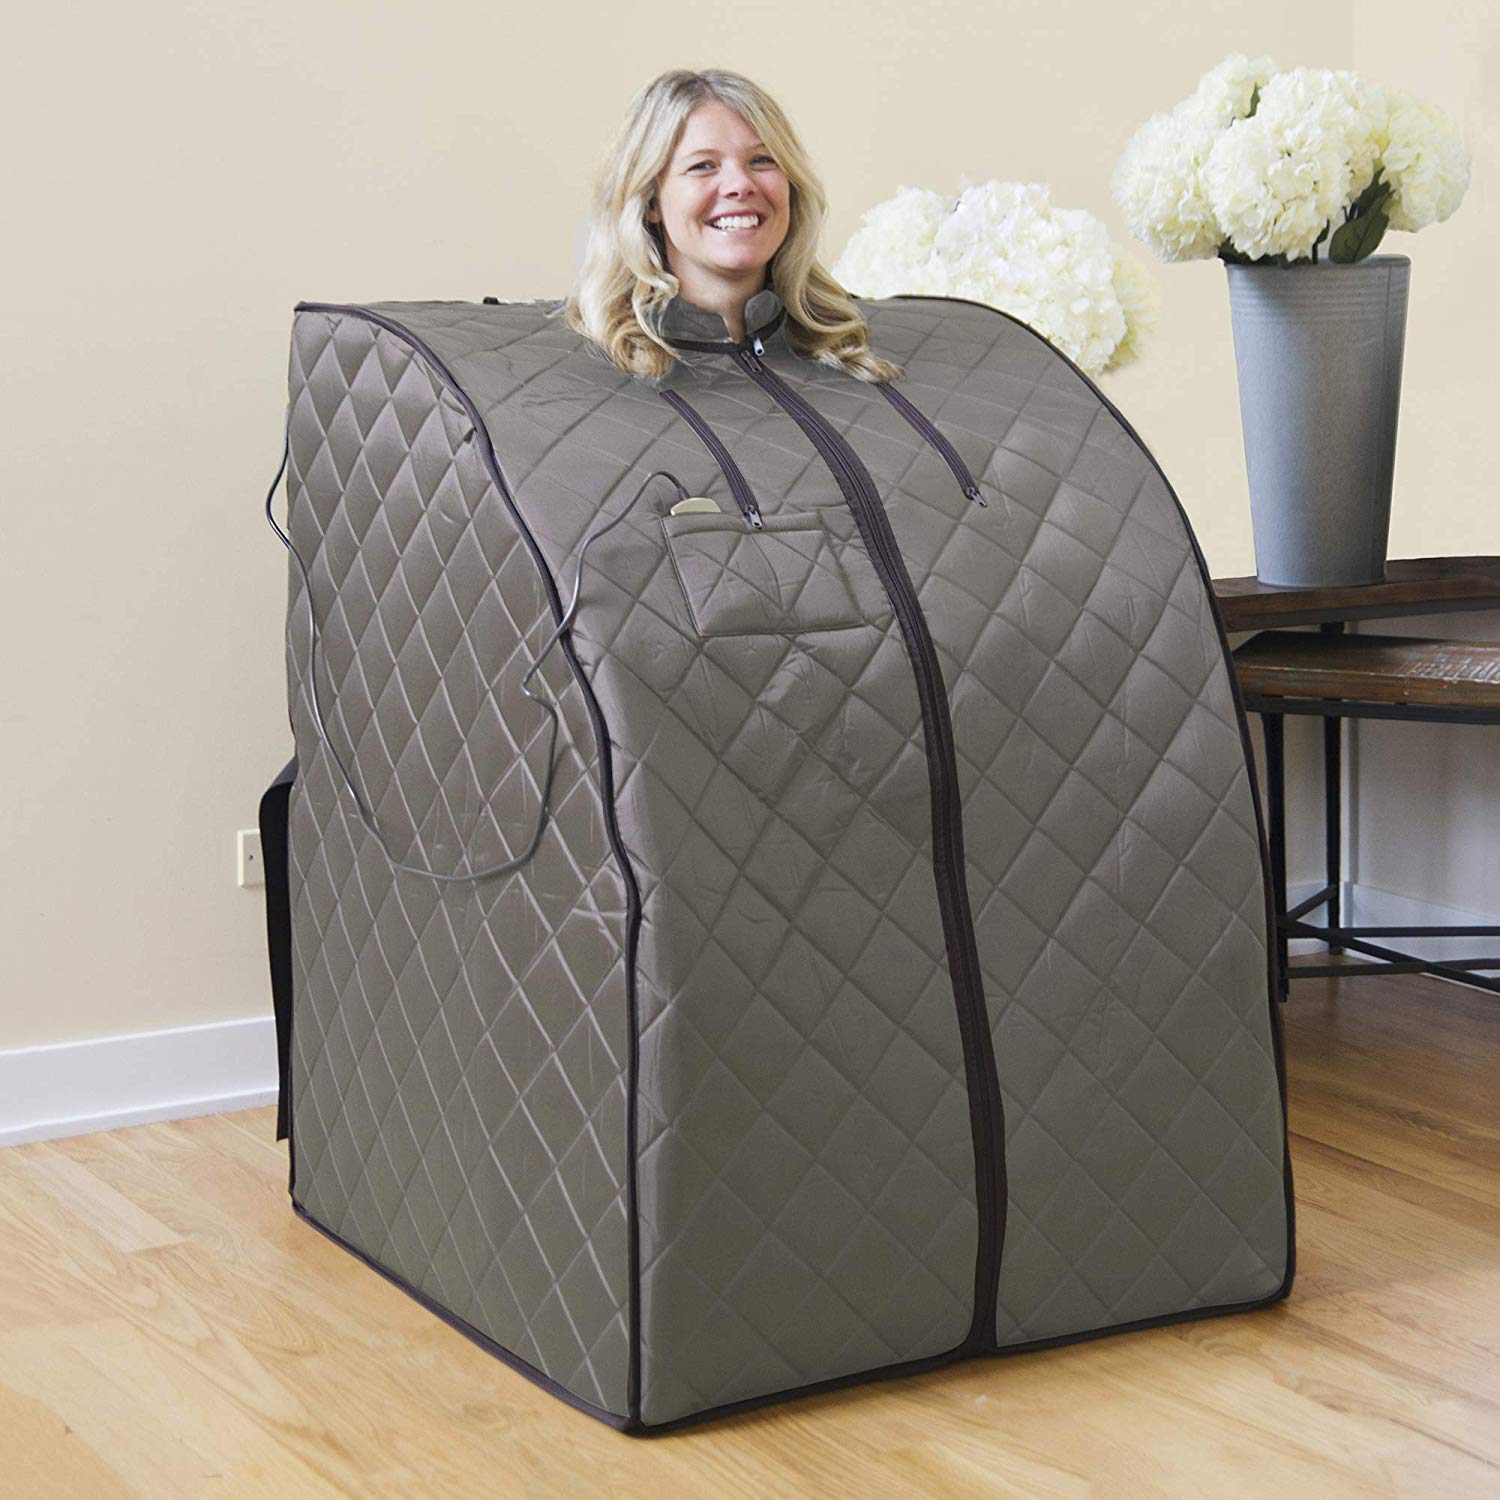 Review of Radiant Saunas Rejuvinator Portable Personal Sauna with FAR Infrared Carbon Panels